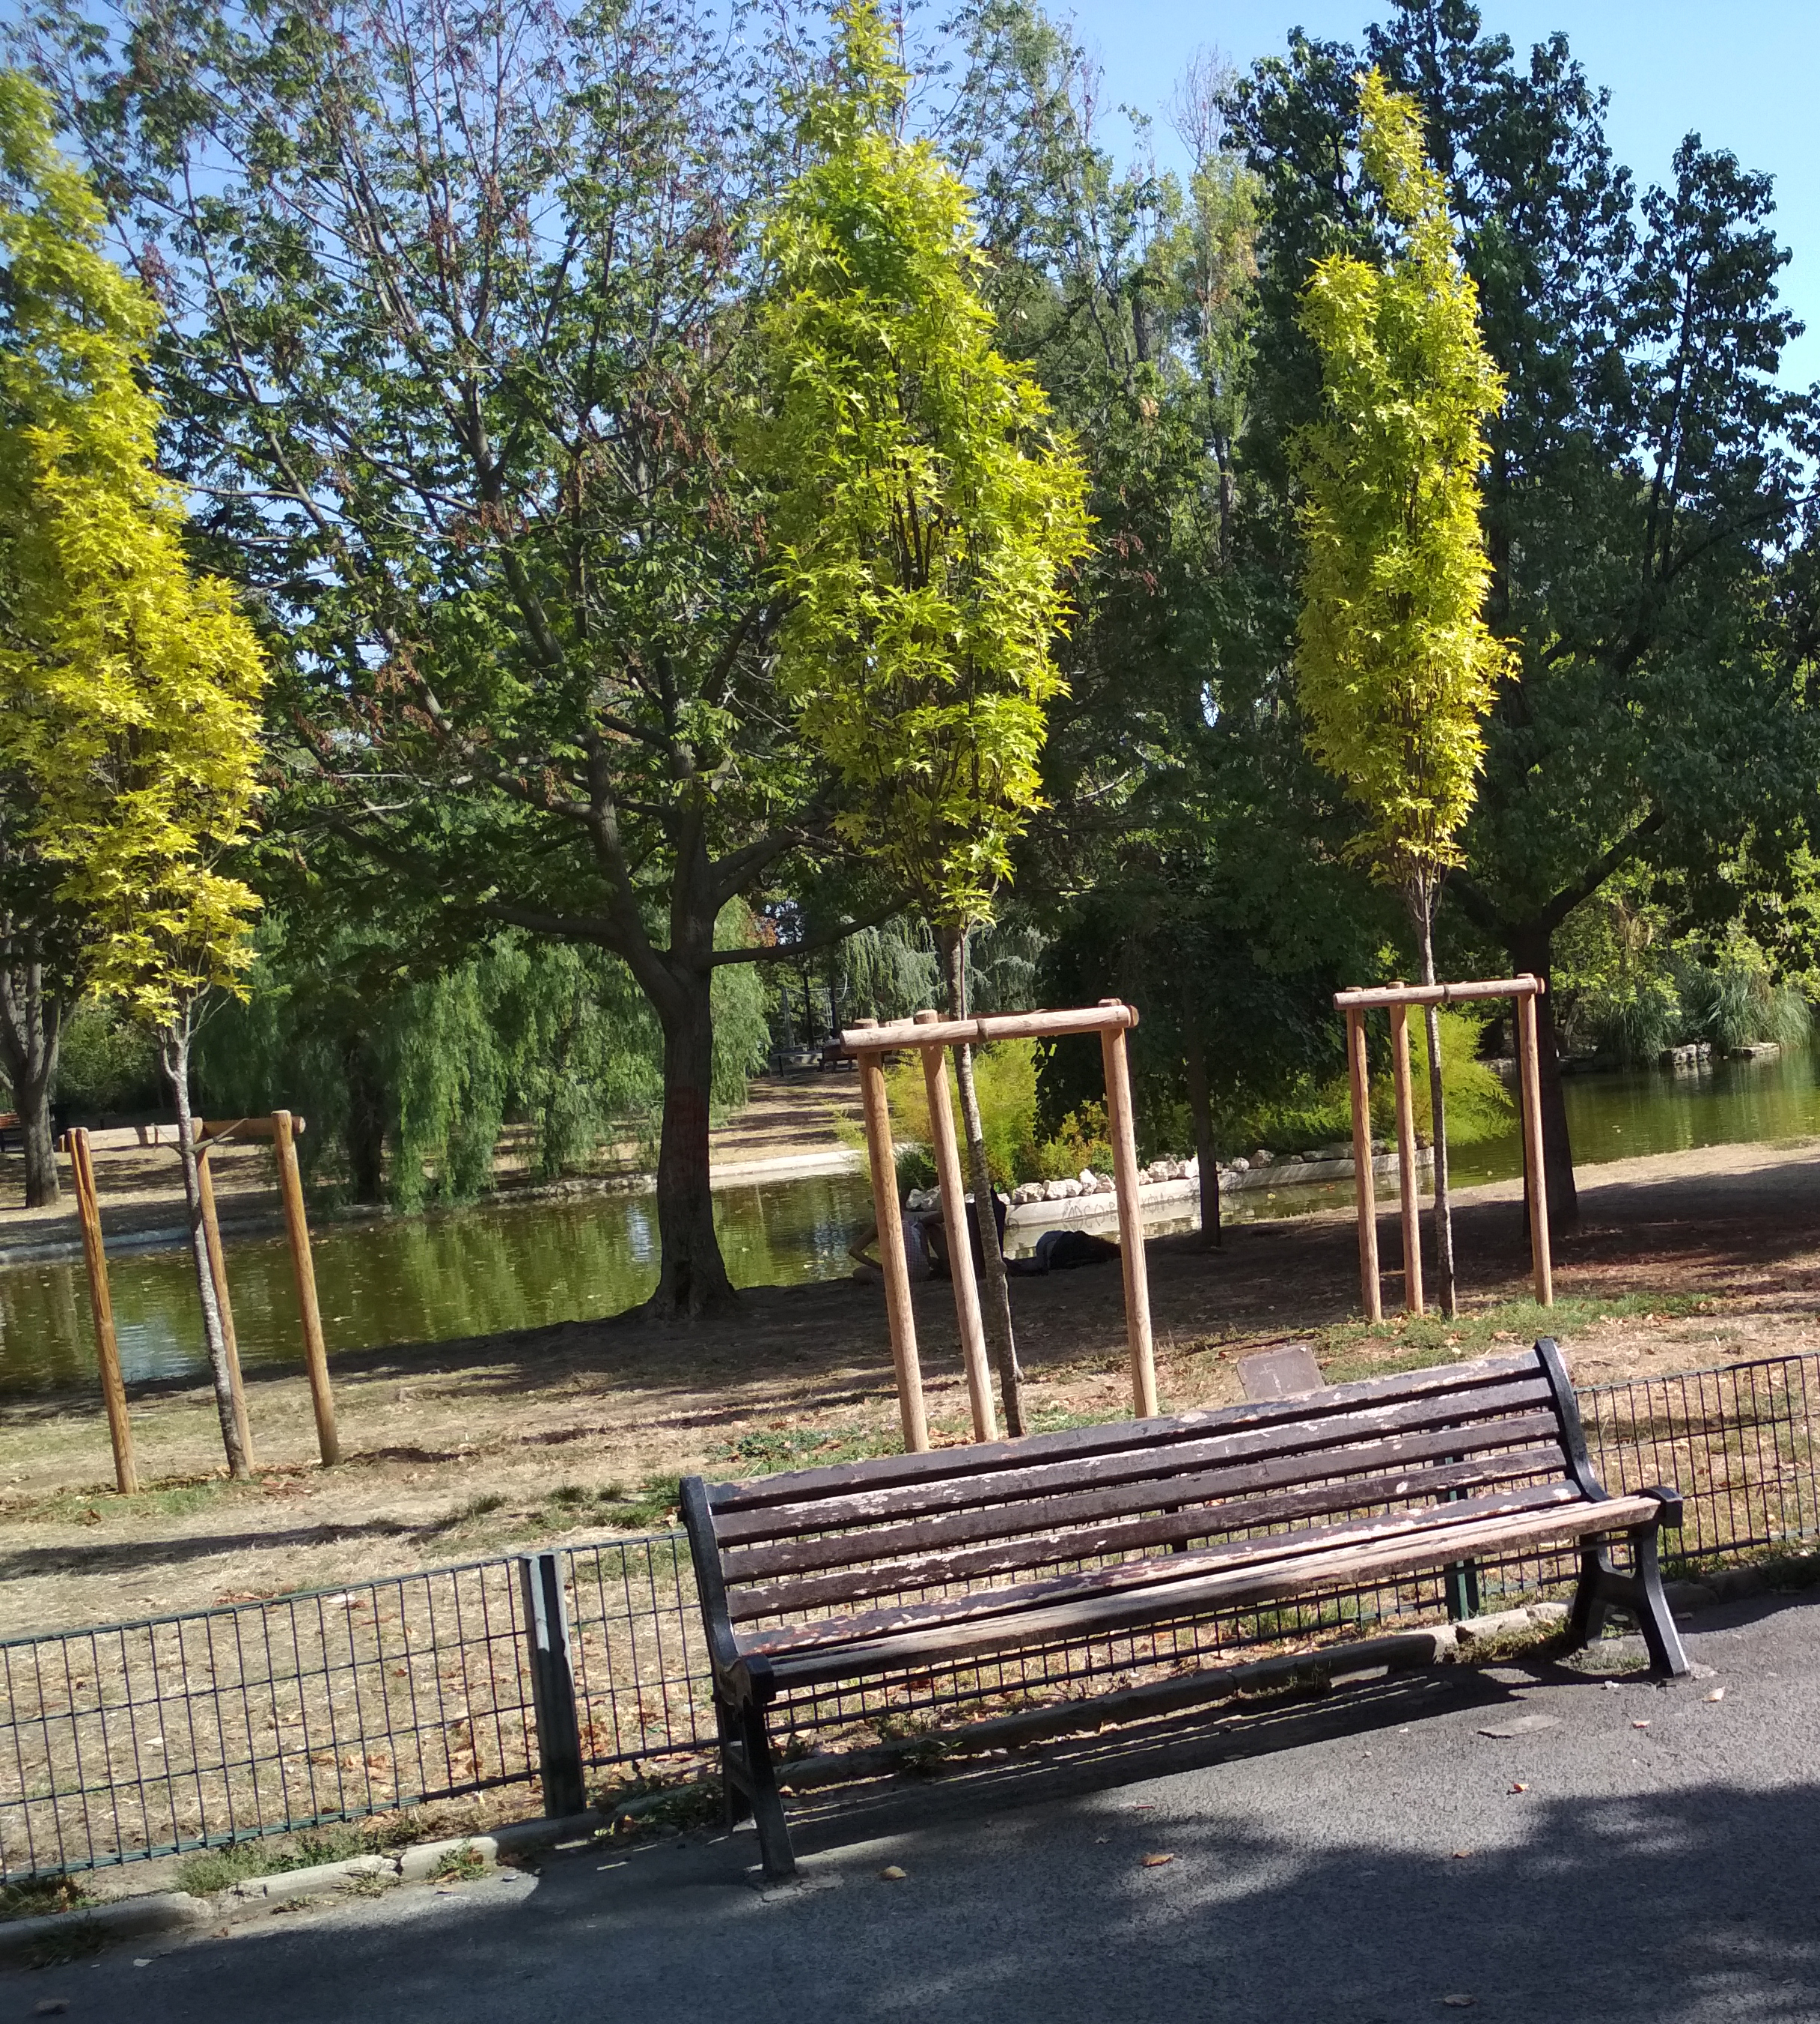 5 parks and gardens to visit during your French immersion program in Montpellier